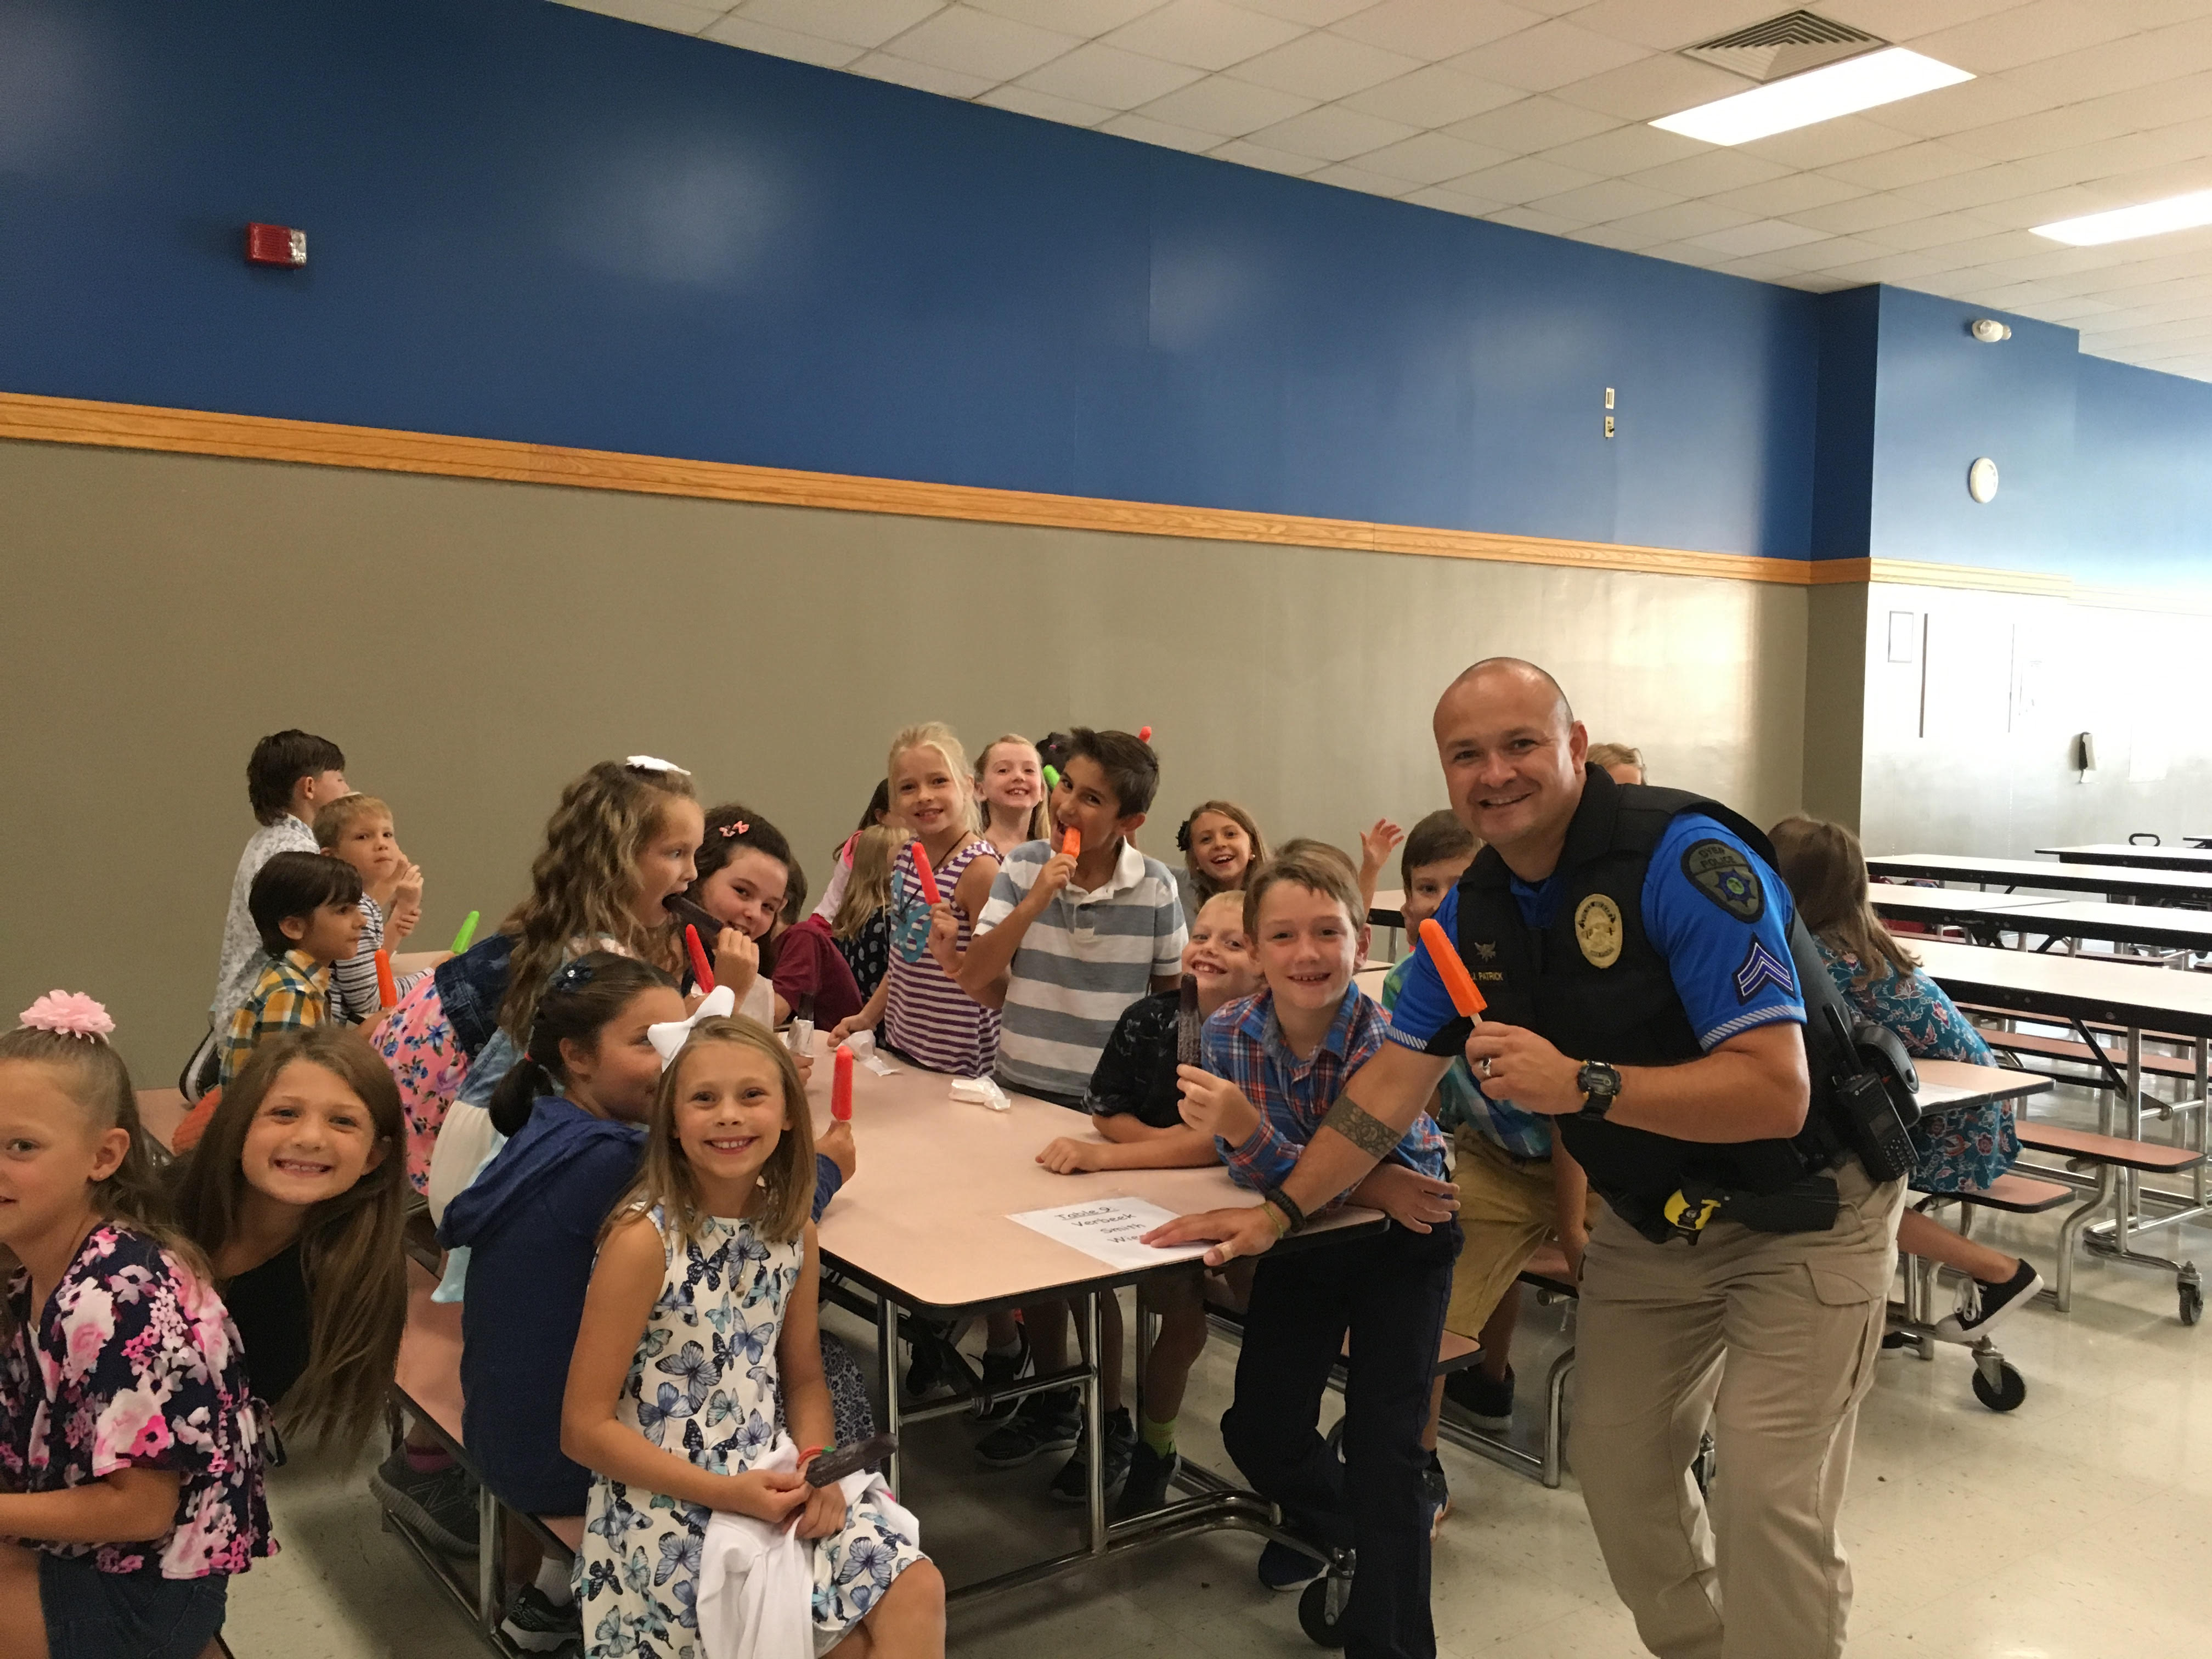 Officer Patrick celebrated his birthday with 3rd grade students at Kolling Elementary School!